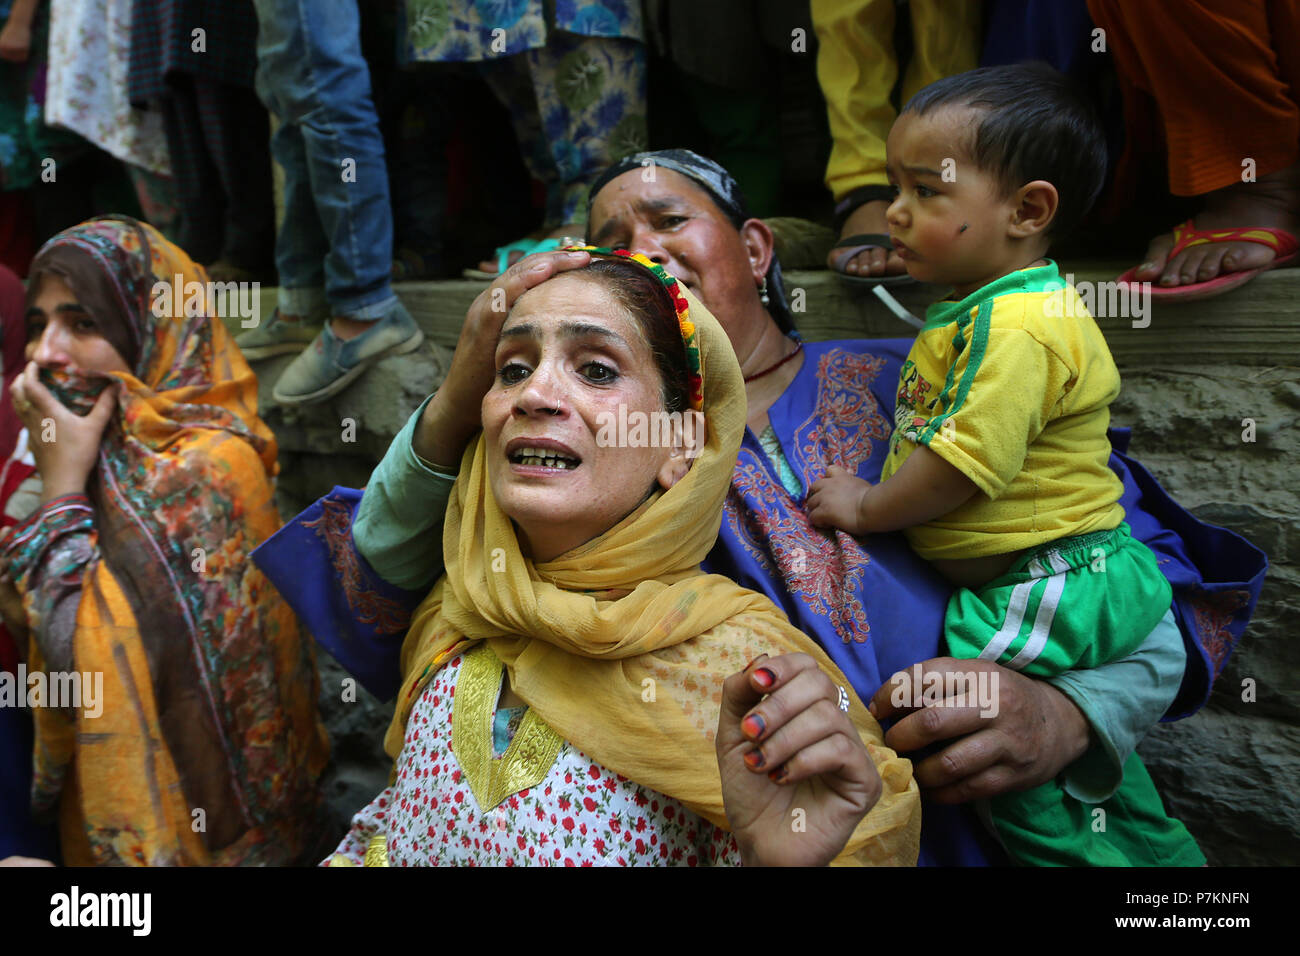 Porn images of kashmiri young girls point